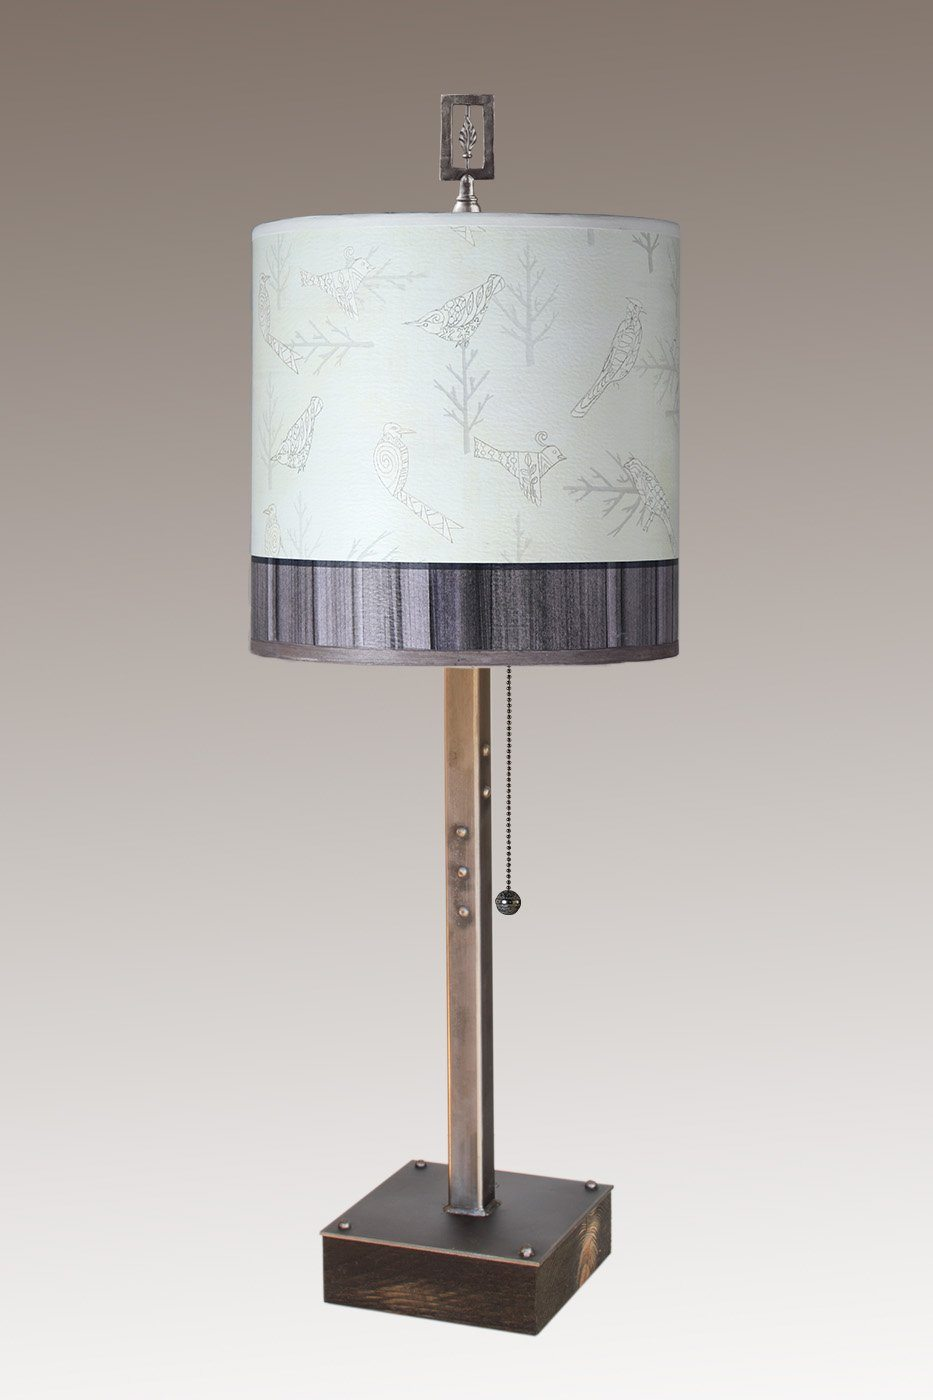 Steel Table Lamp on Wood with Medium Drum Shade in Perch